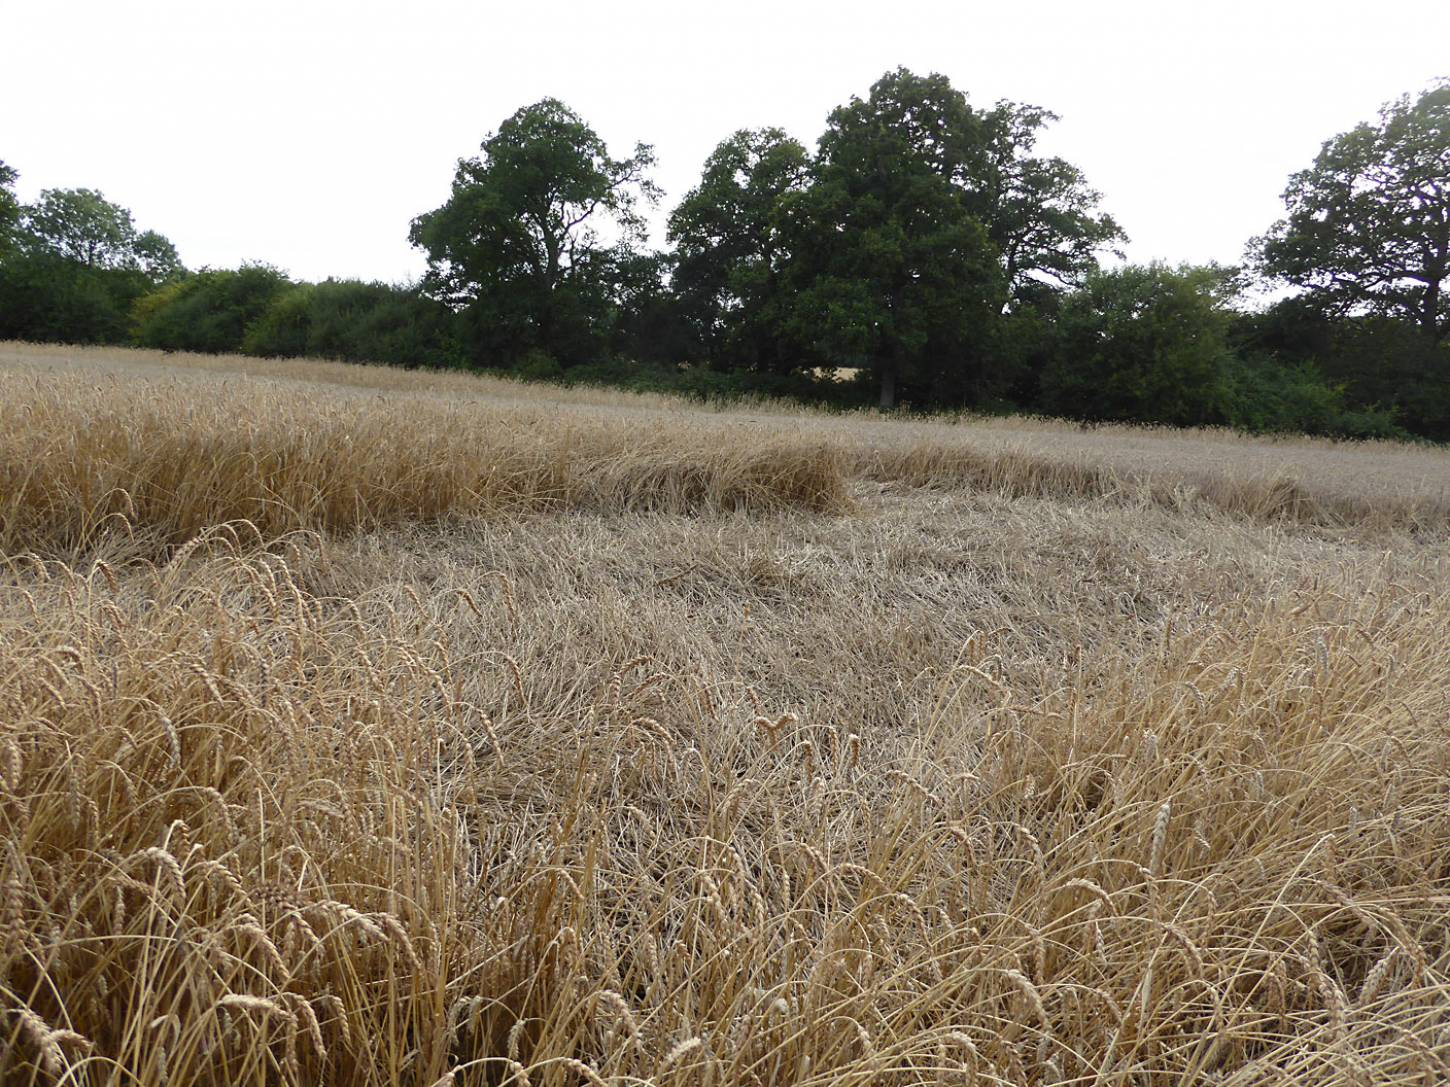 area of lodging on Ble de Haie, farm review pre-harvest '17 - 6:30pm&nbsp;1<sup>st</sup>&nbsp;Aug.&nbsp;'17  <a href='http://maps.google.com/?t=h&q=51.209500,-0.086397&z=18&output=embed' target=_blank><img src='http://www.brockwell-bake.org.uk/img/marker.png' style='border:none;vertical-align:top' height=16px></a>